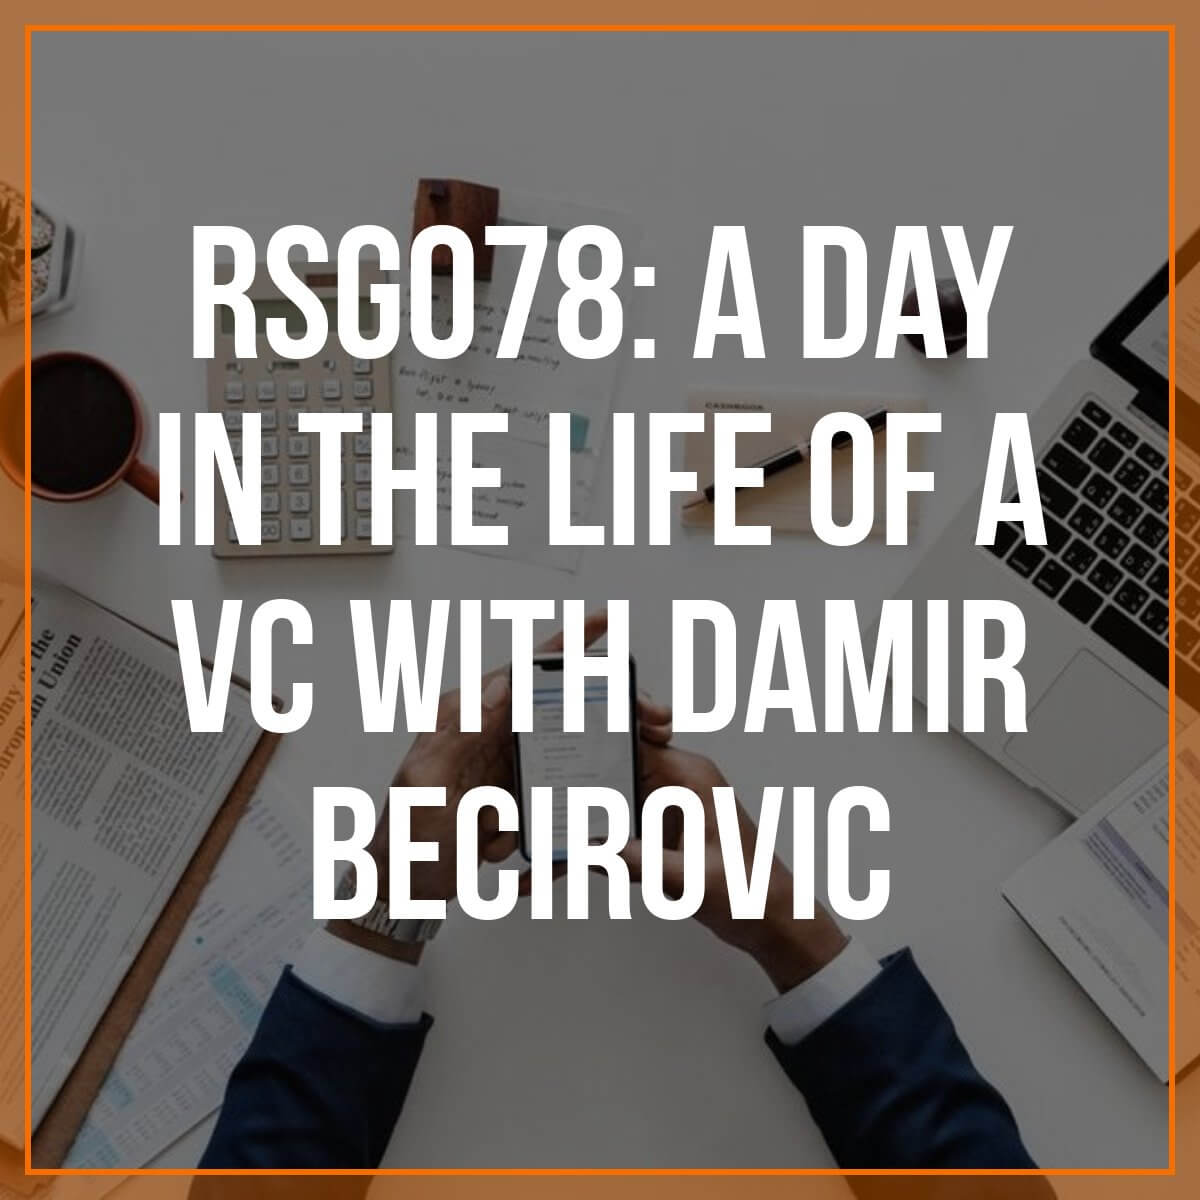 If you've ever wondered how small companies get big funding, this podcast episode is for you. I talk with Damir Becirovic, a venture capitalist with Index Ventures, about investing in companies like Bird and so much more. If you have a company or idea in mind, you definitely want to check out this episode to see how VCs like Damir evaluate companies and, ultimately, how they decide to invest in them.